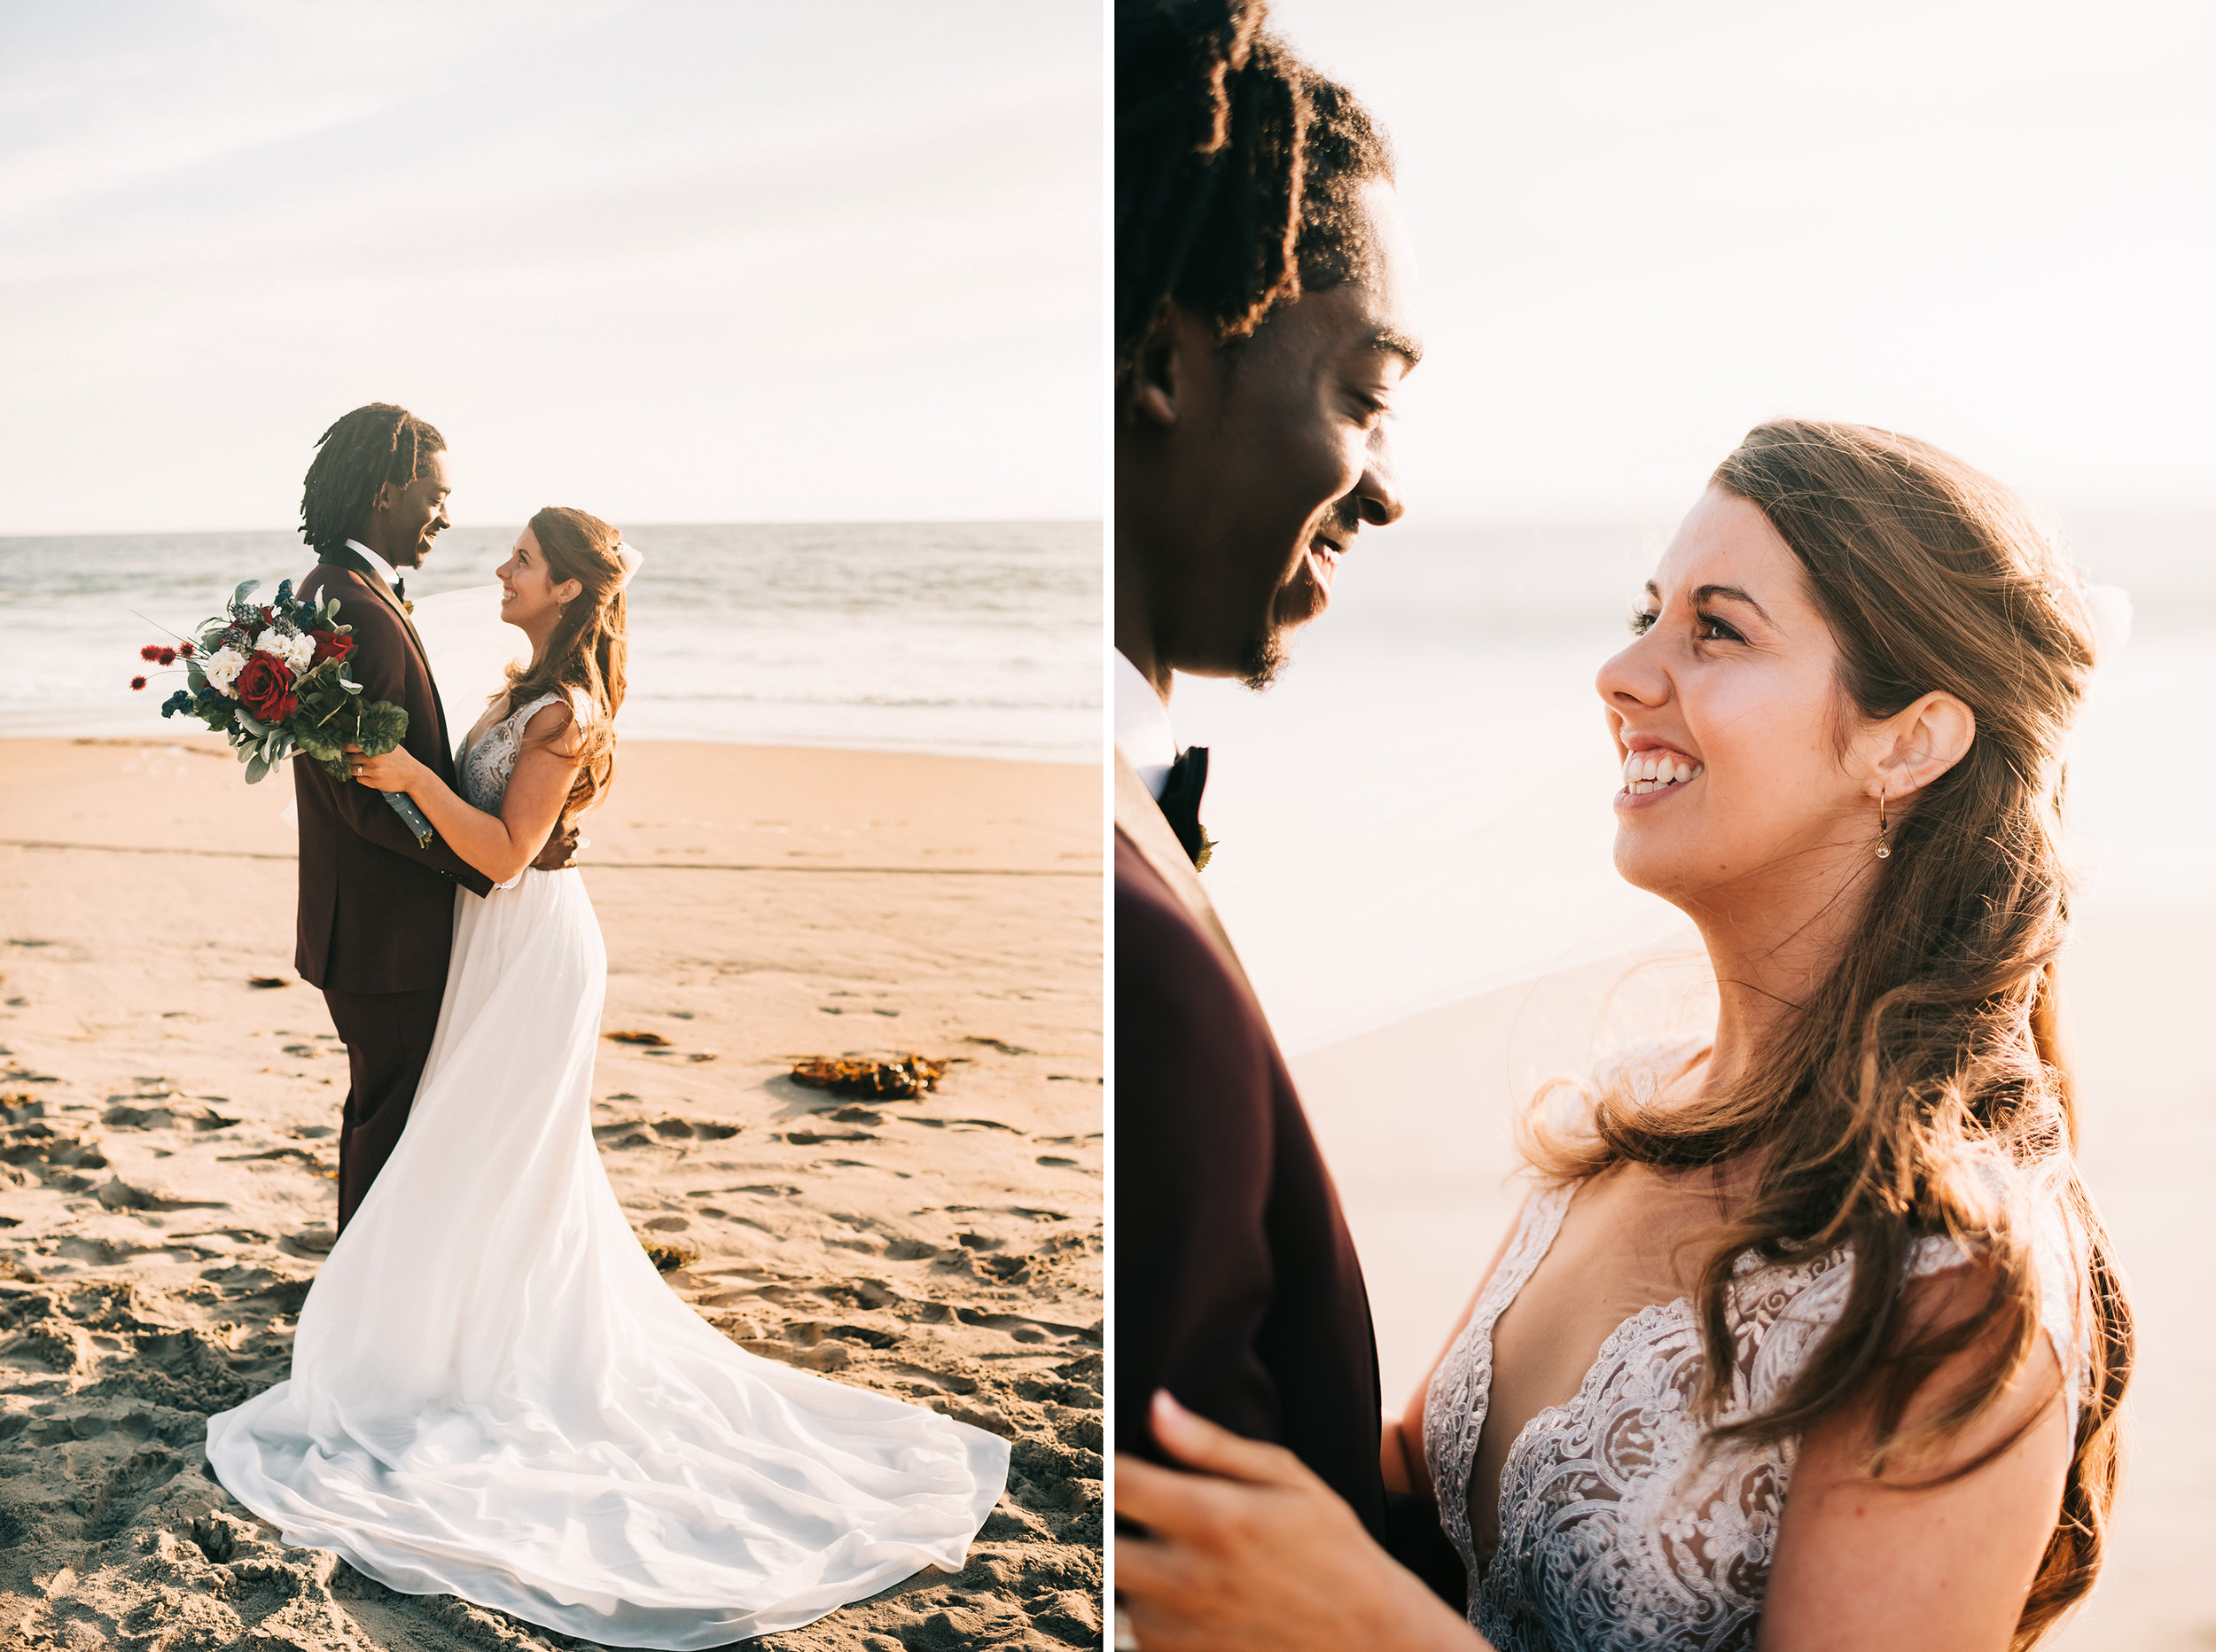 southern california laguna beach salt creek beach los angeles socal boho bay area akland san francisco engagement wedding nontraditional fun creative eclectic photographer magic-828.jpg